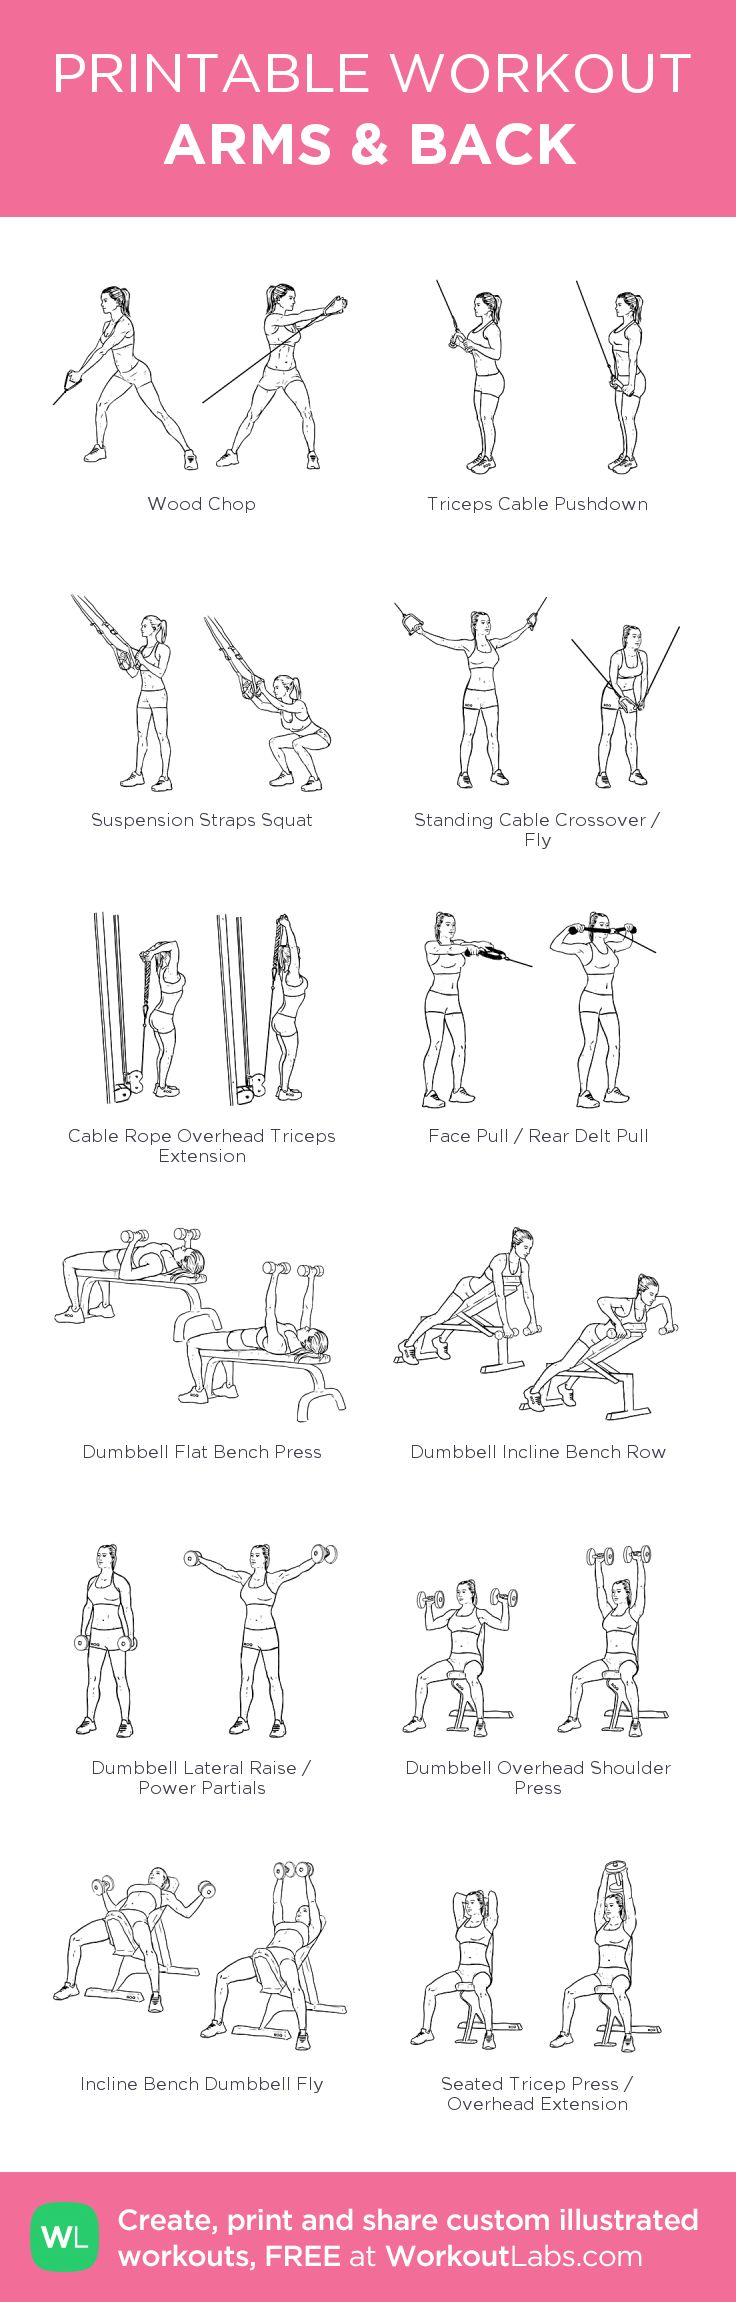 ARMS & BACK:my visual workout created at WorkoutLabs.com • Click through to customize and download as a FREE PDF! #customworkout